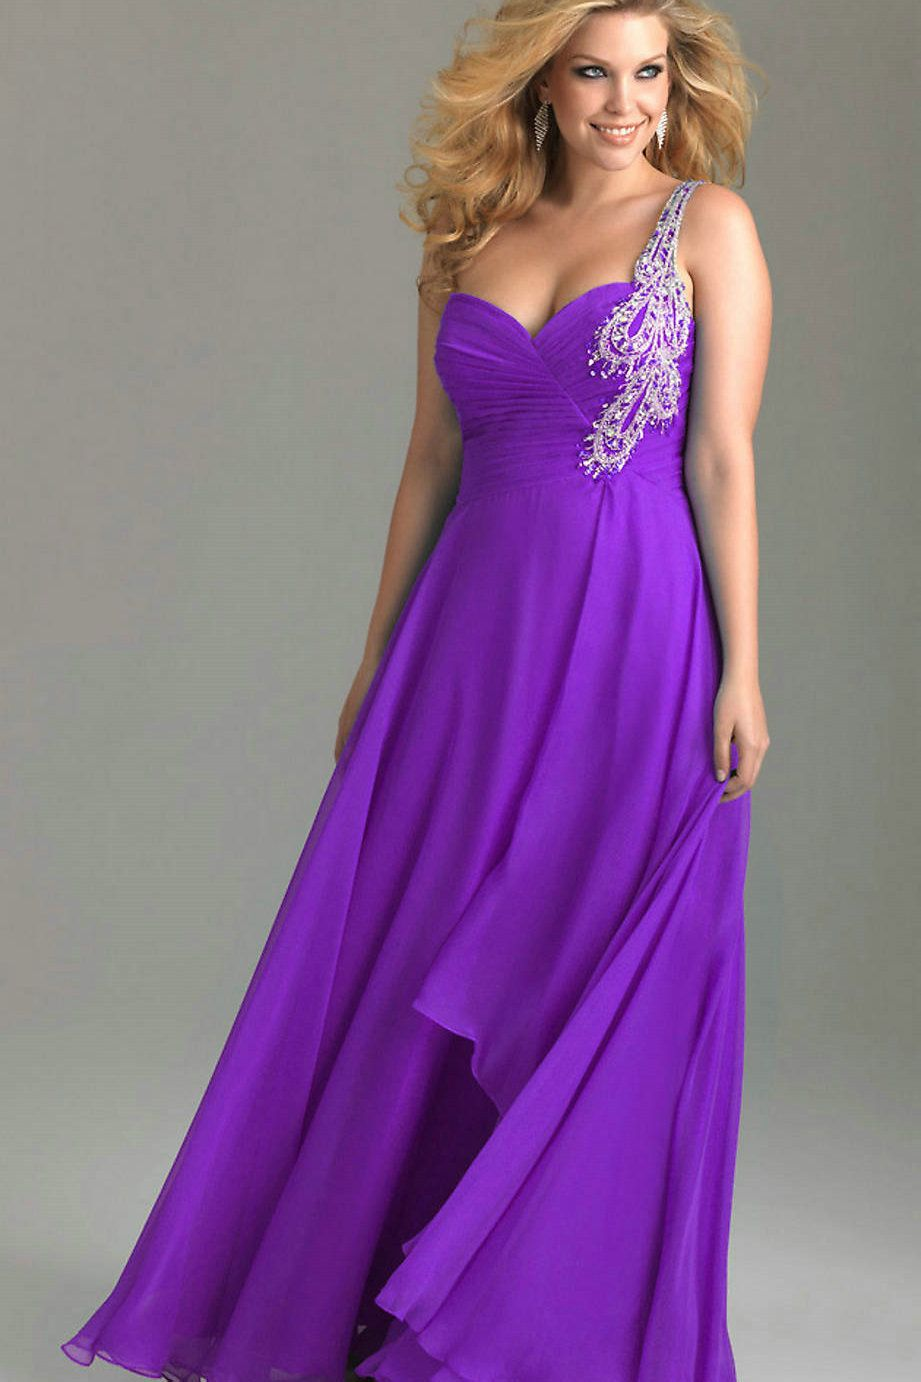 Prom Dresses For Plus Size Girls that Make a Good Looking: Blue Prom ...